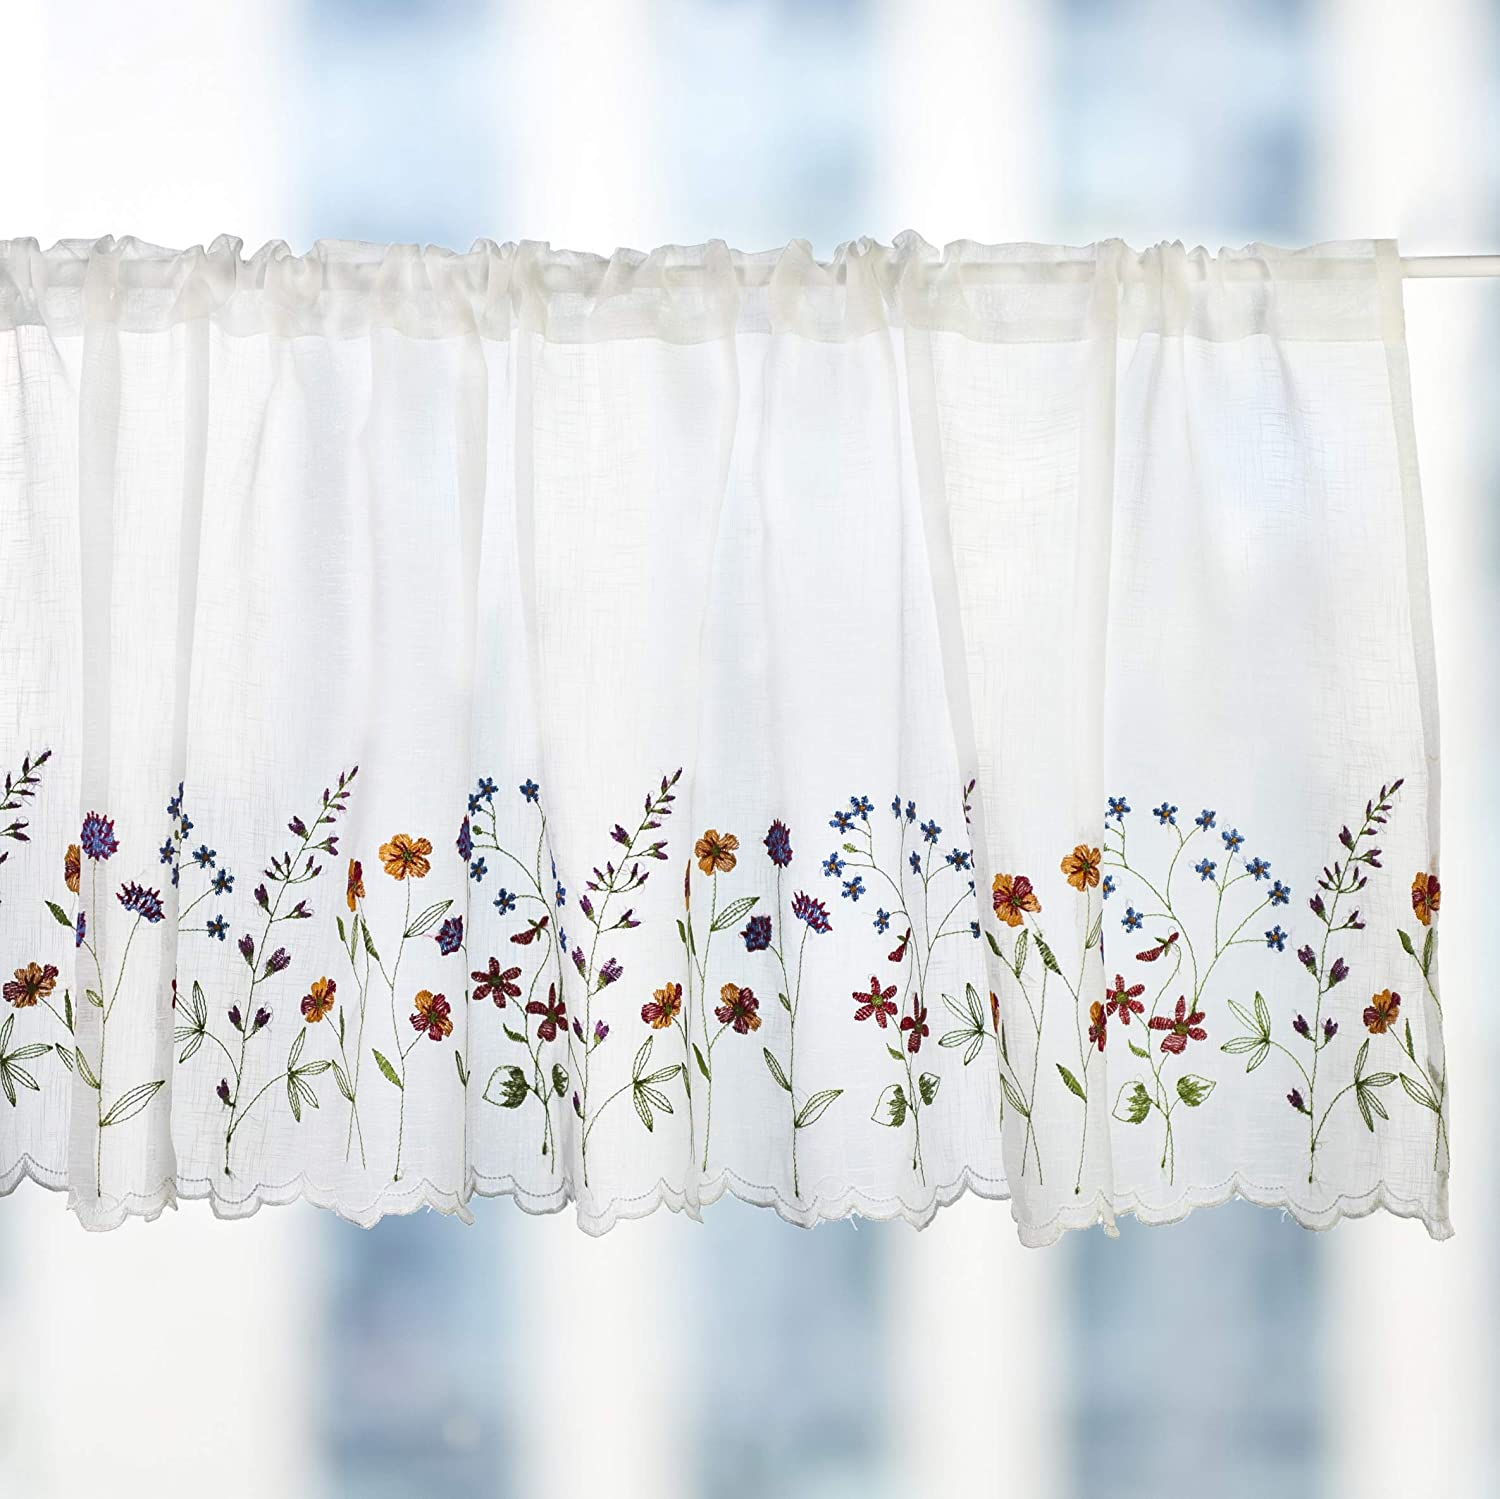 Wemay Sheer Embroidery Pastoral Style Cafe Curtain Kitchen Curtain Floral Window Valance W60xl18 Inch Wild Flower Kitchen Dining